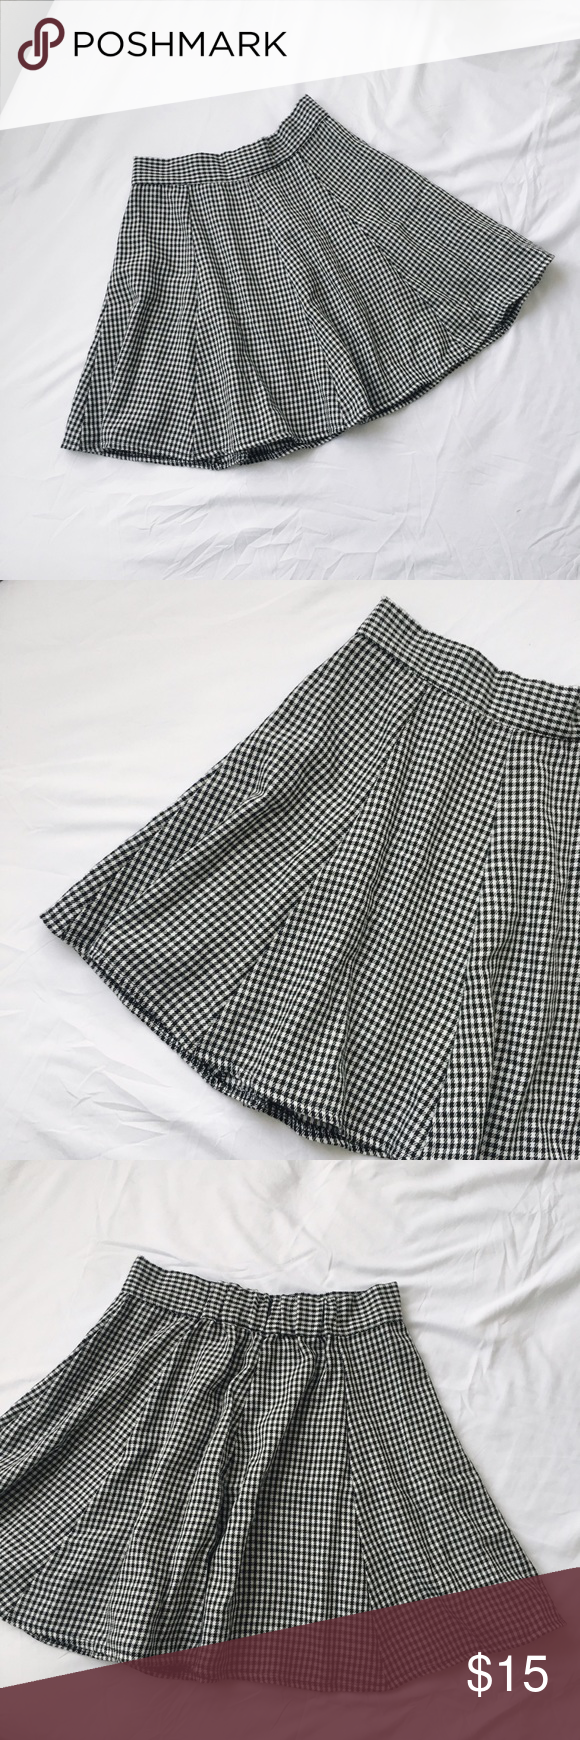 Brandy Melville gingham circle skirt Brandy Melville gingham circle skater skirt. Has the perfect amount of swing to the skirt, with a zipper in the back and an elastic band for more of a stretch. Brandy Melville Skirts Circle & Skater